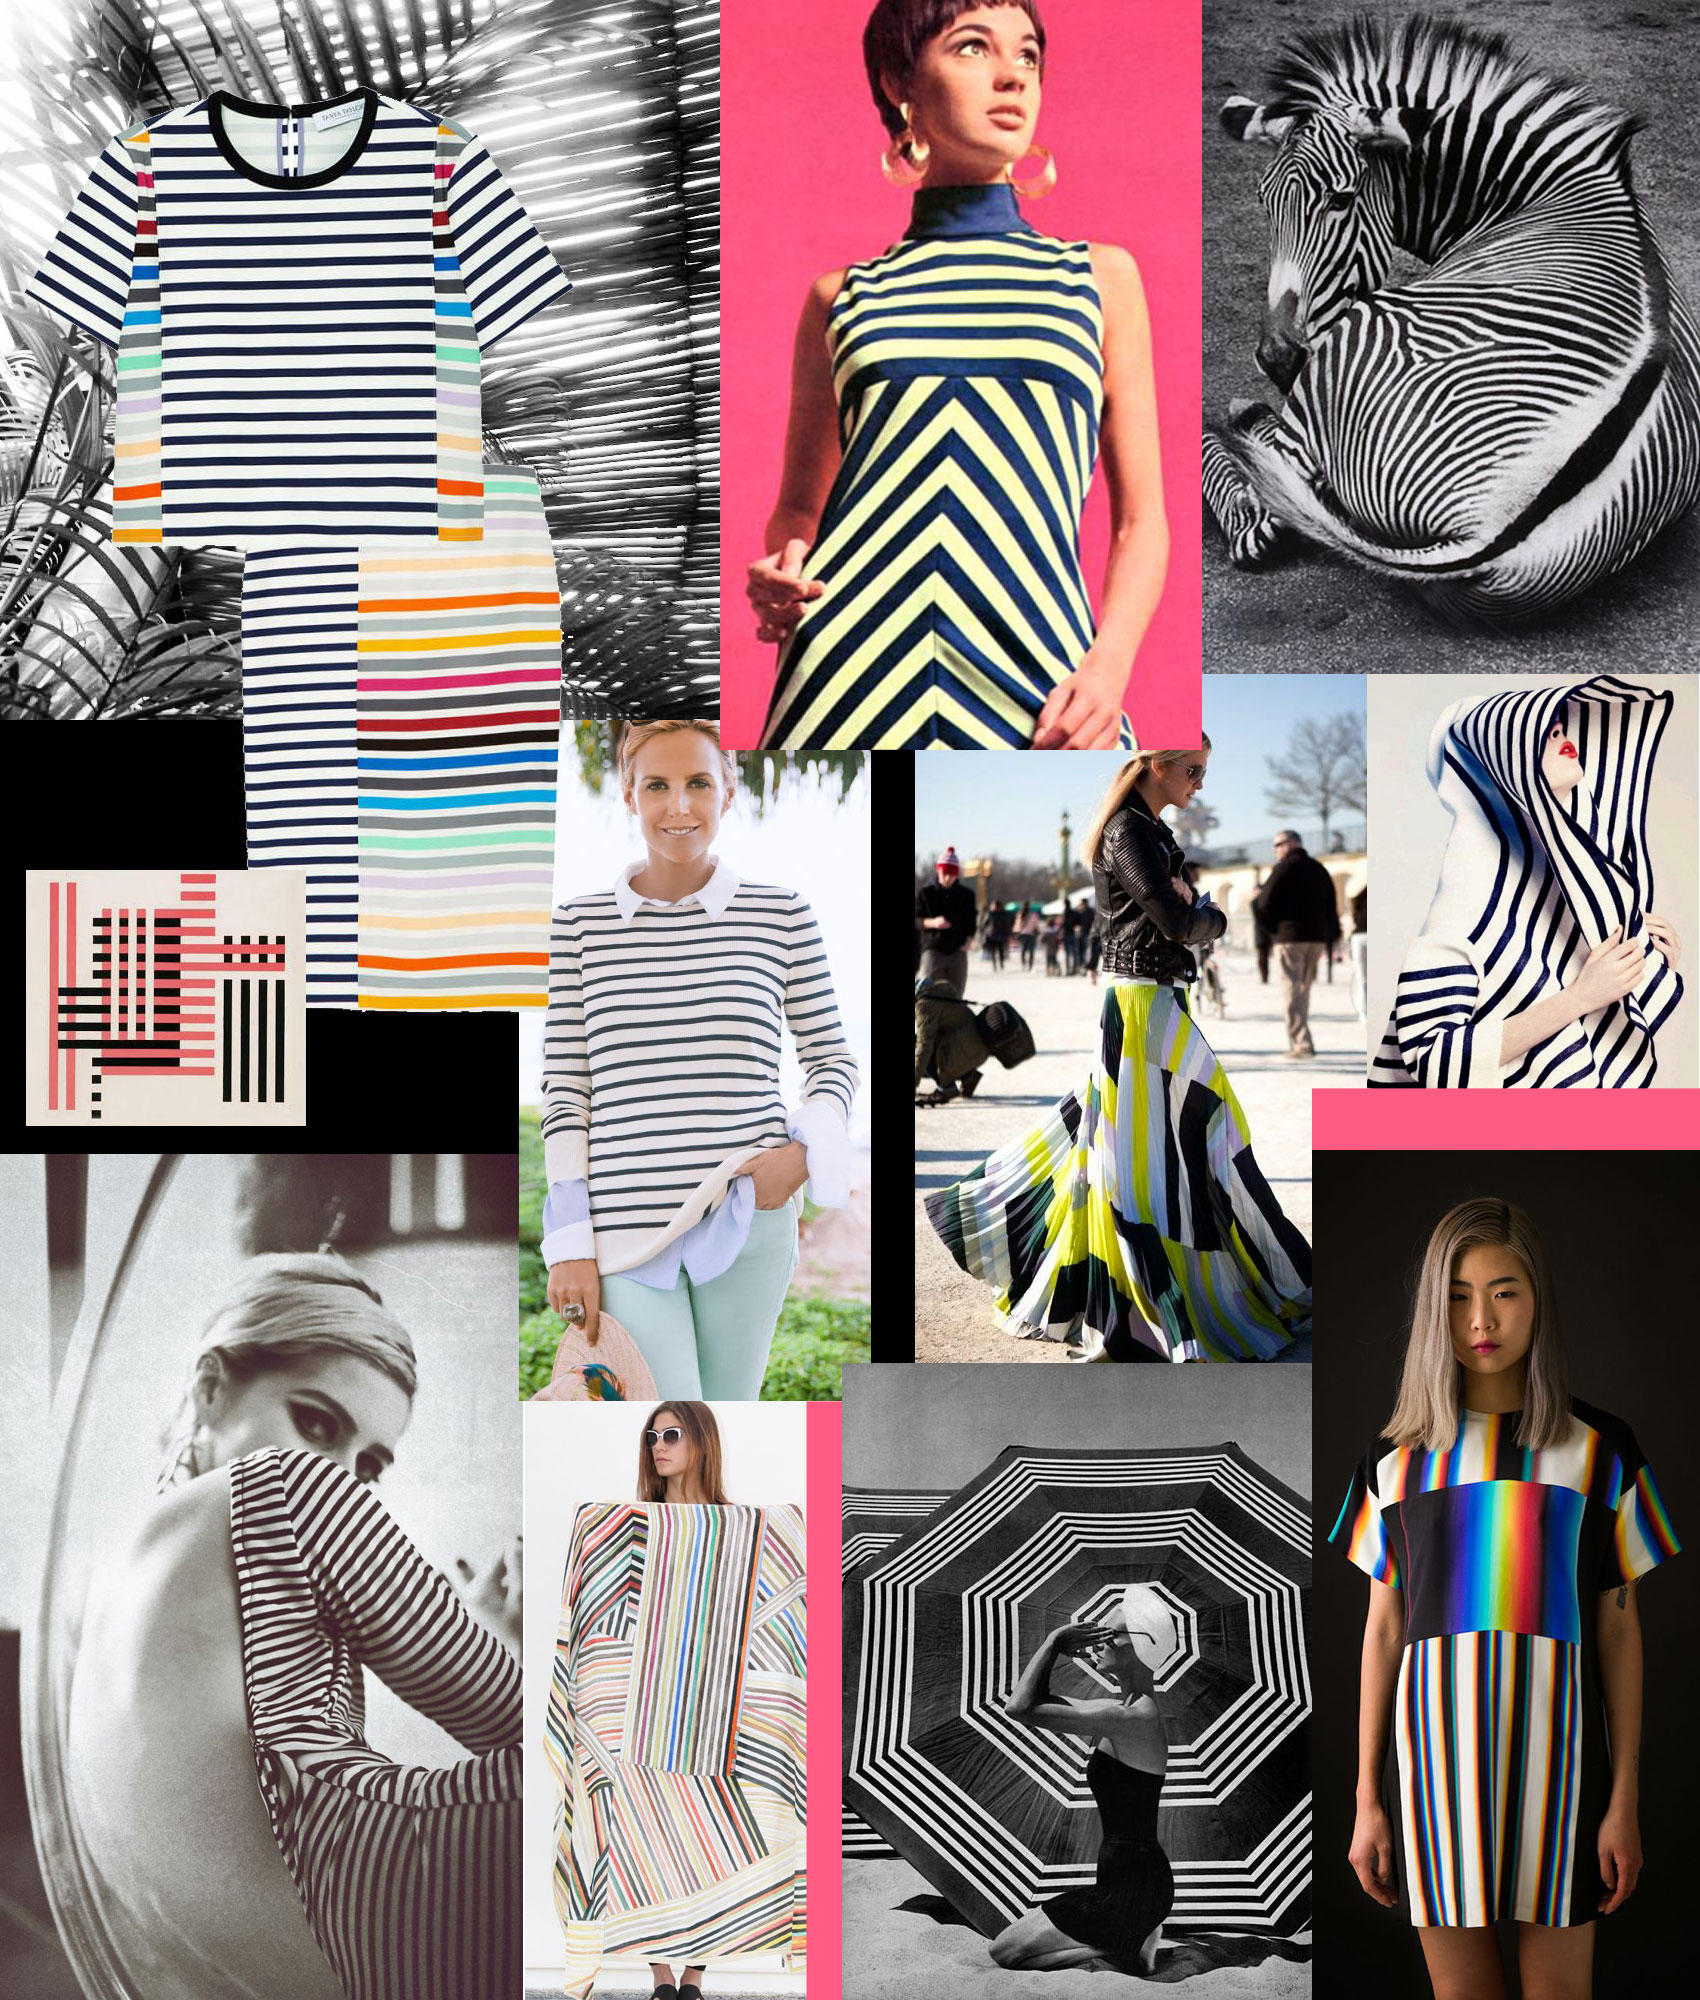 A Striped Collage by Liz Nehdi, 2014